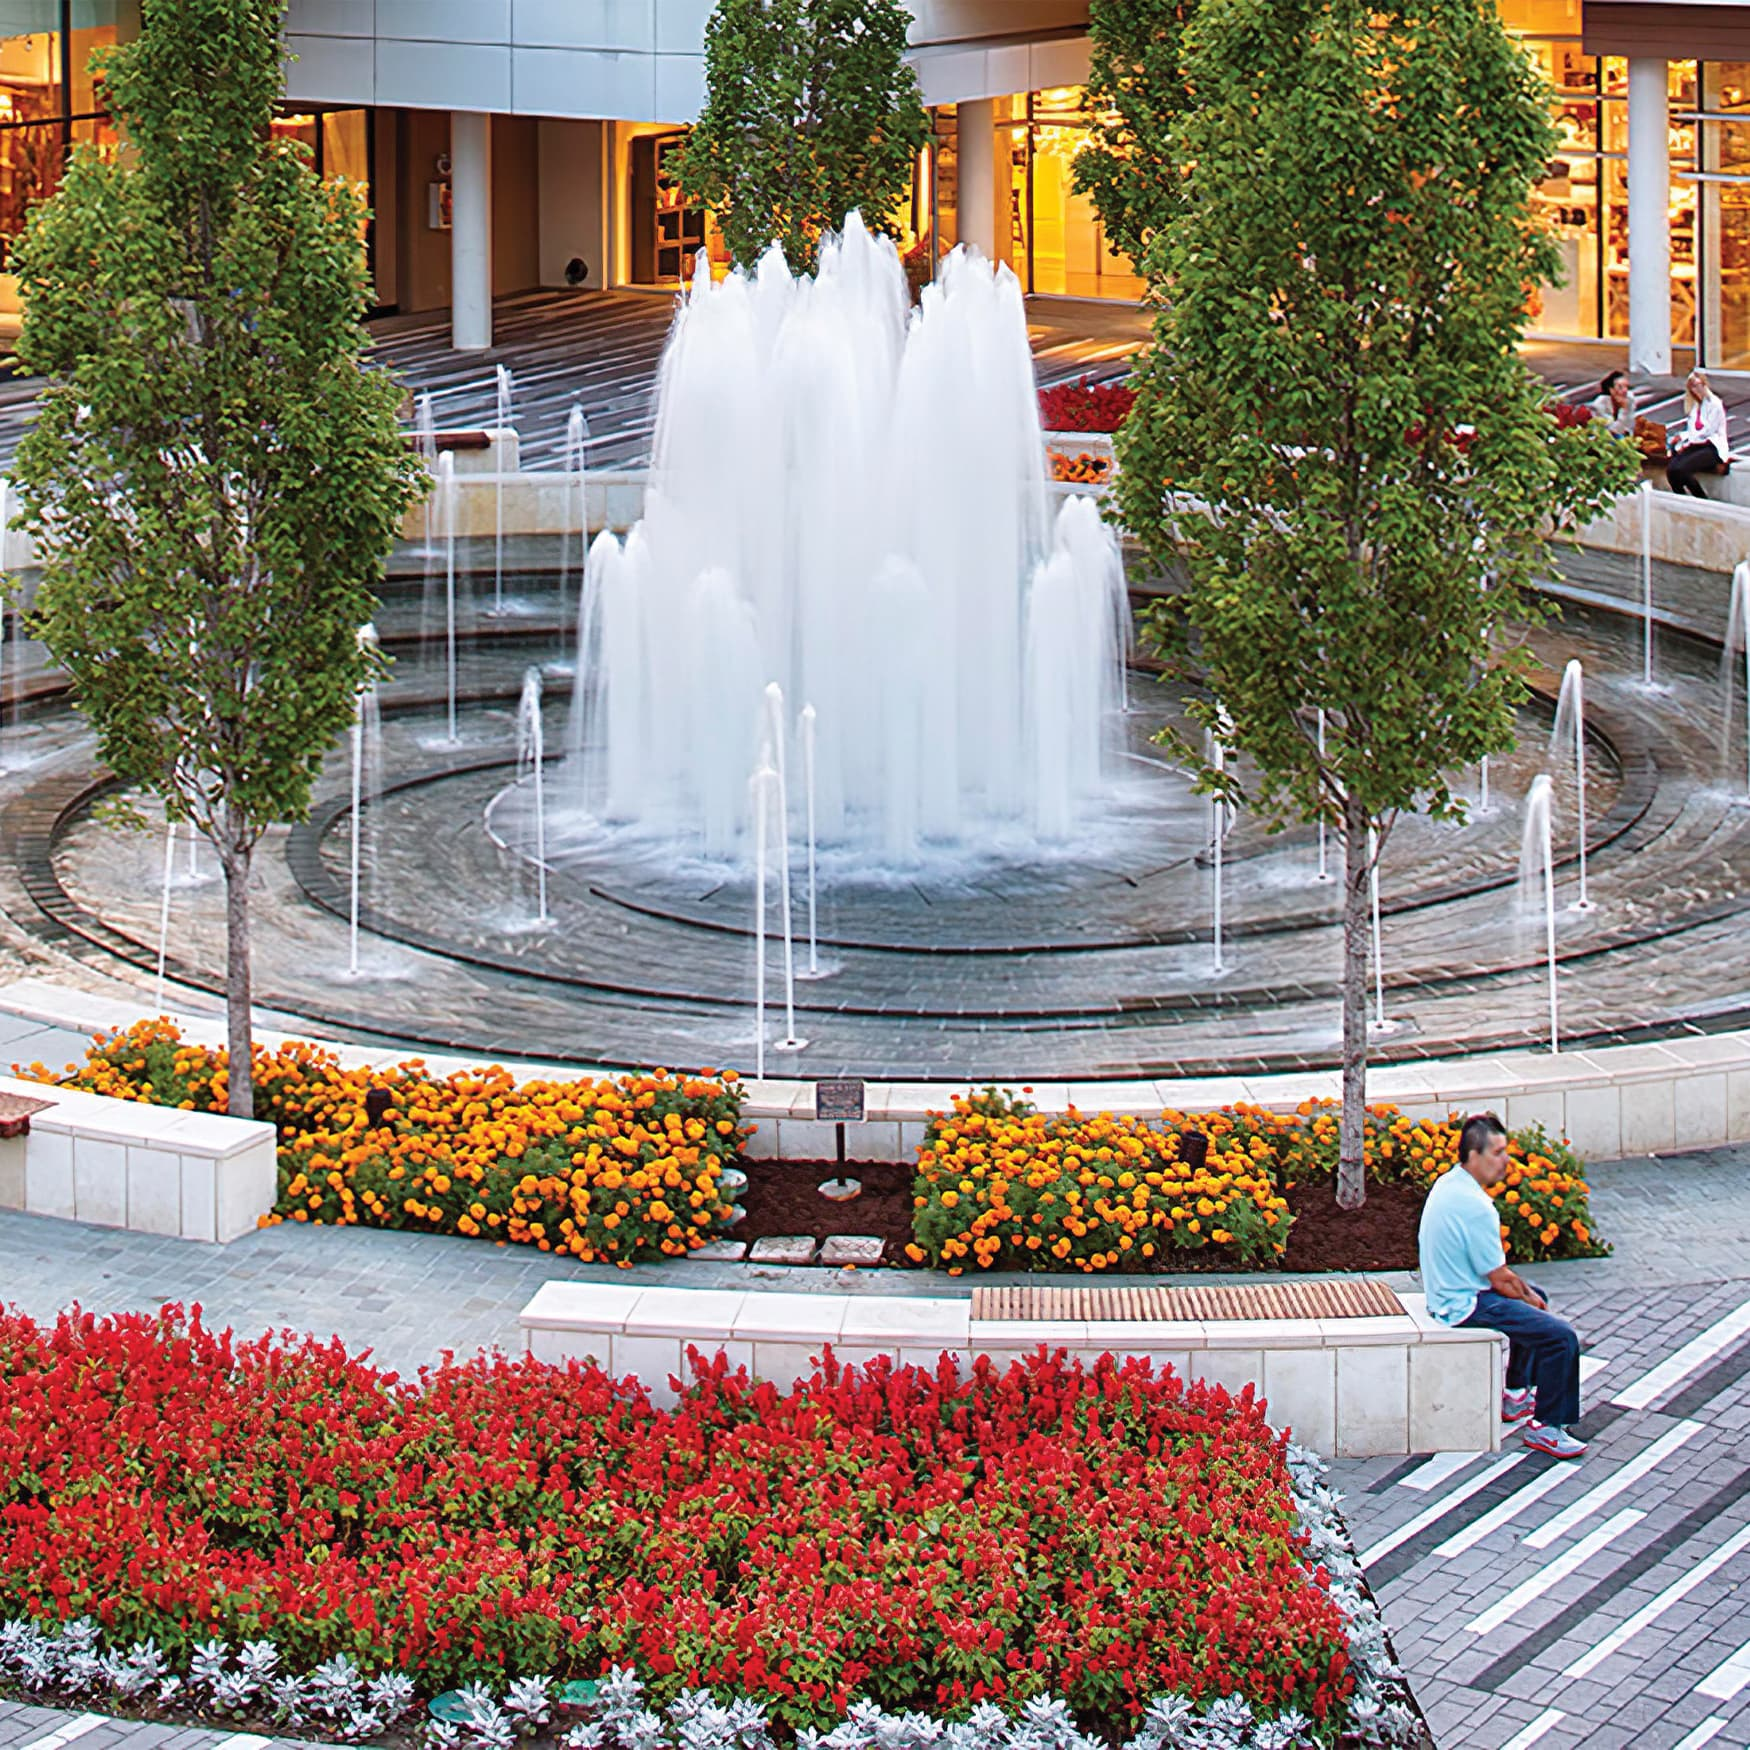 Fountain in center of plaza with surrounding seating and integrated flowered landscaping